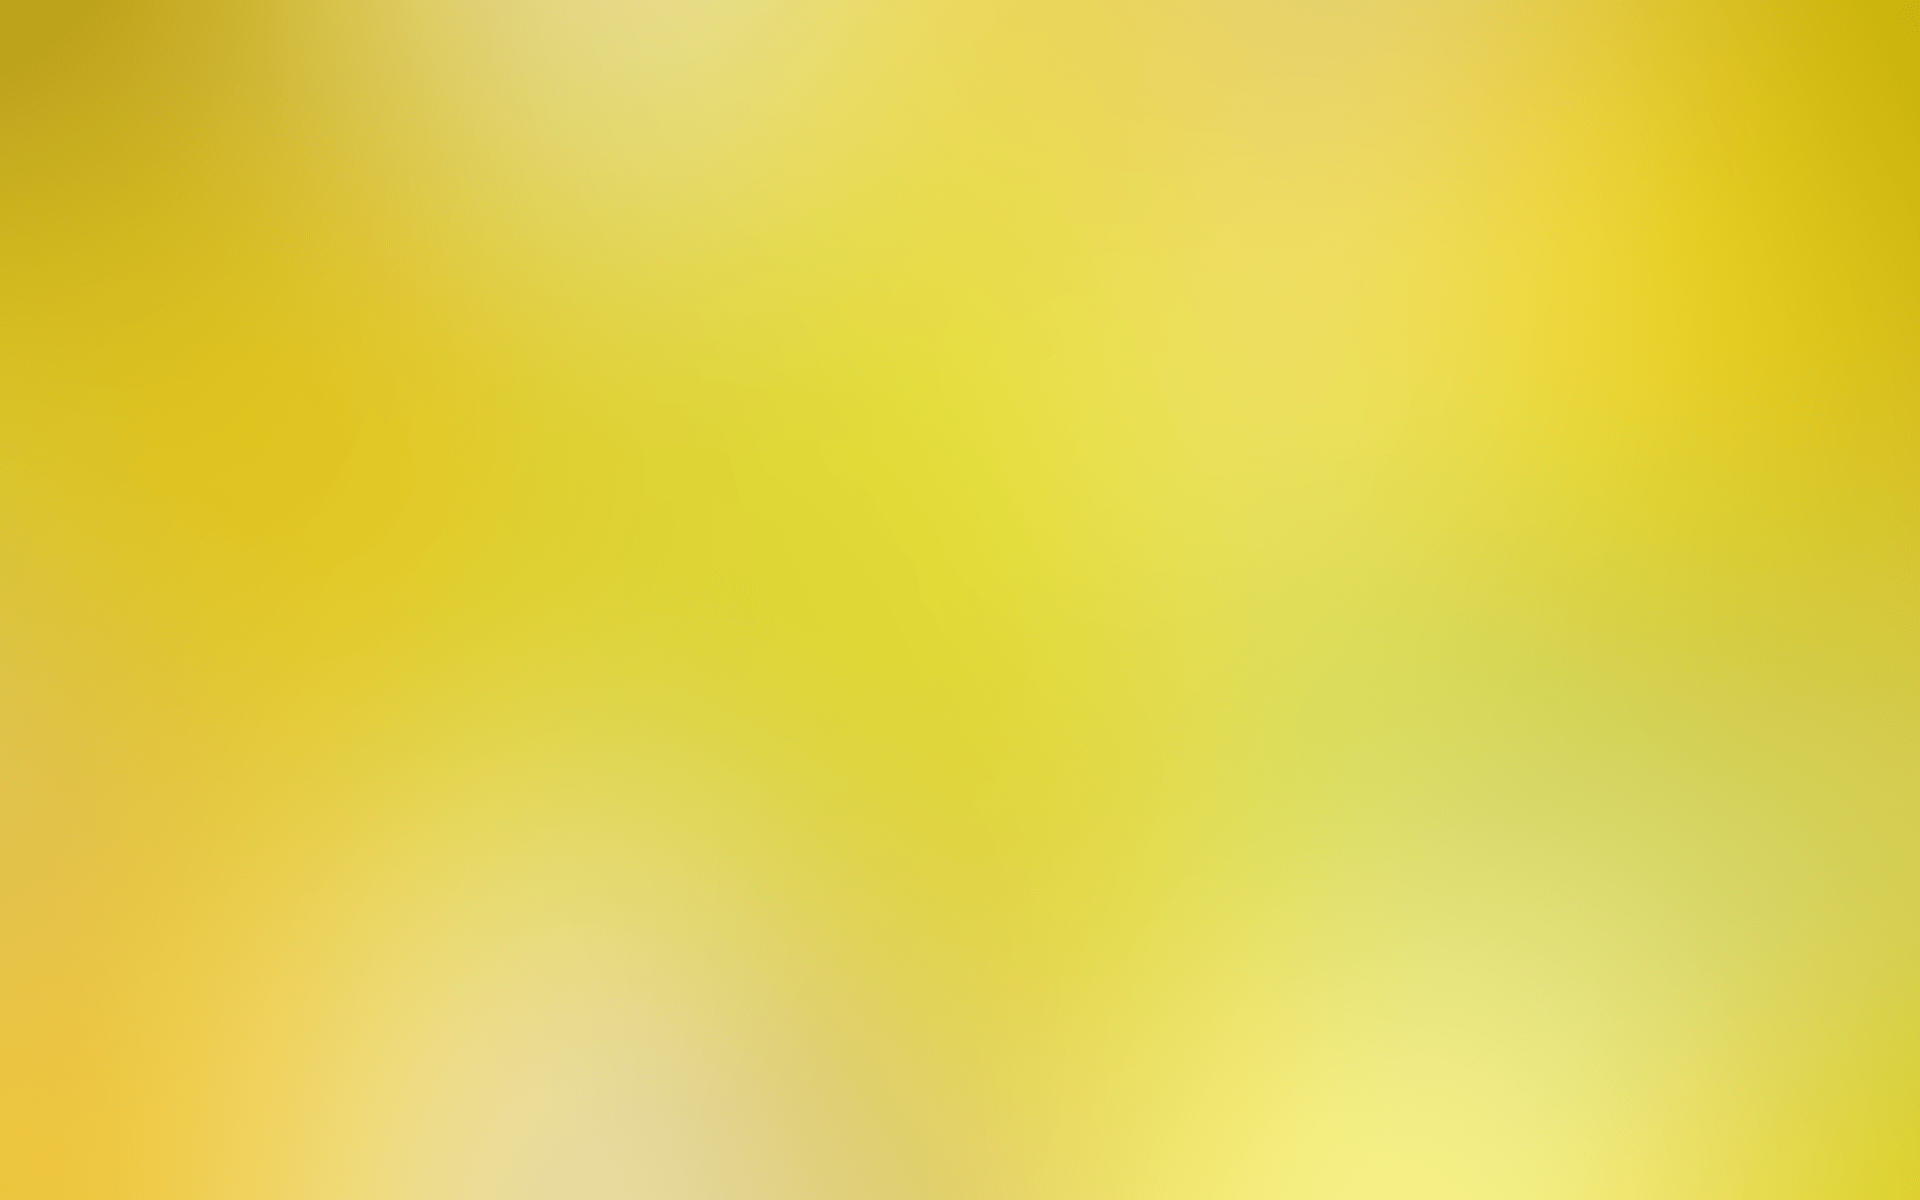 Yellow colour wallpaper best hd backgrounds of yellow colour art